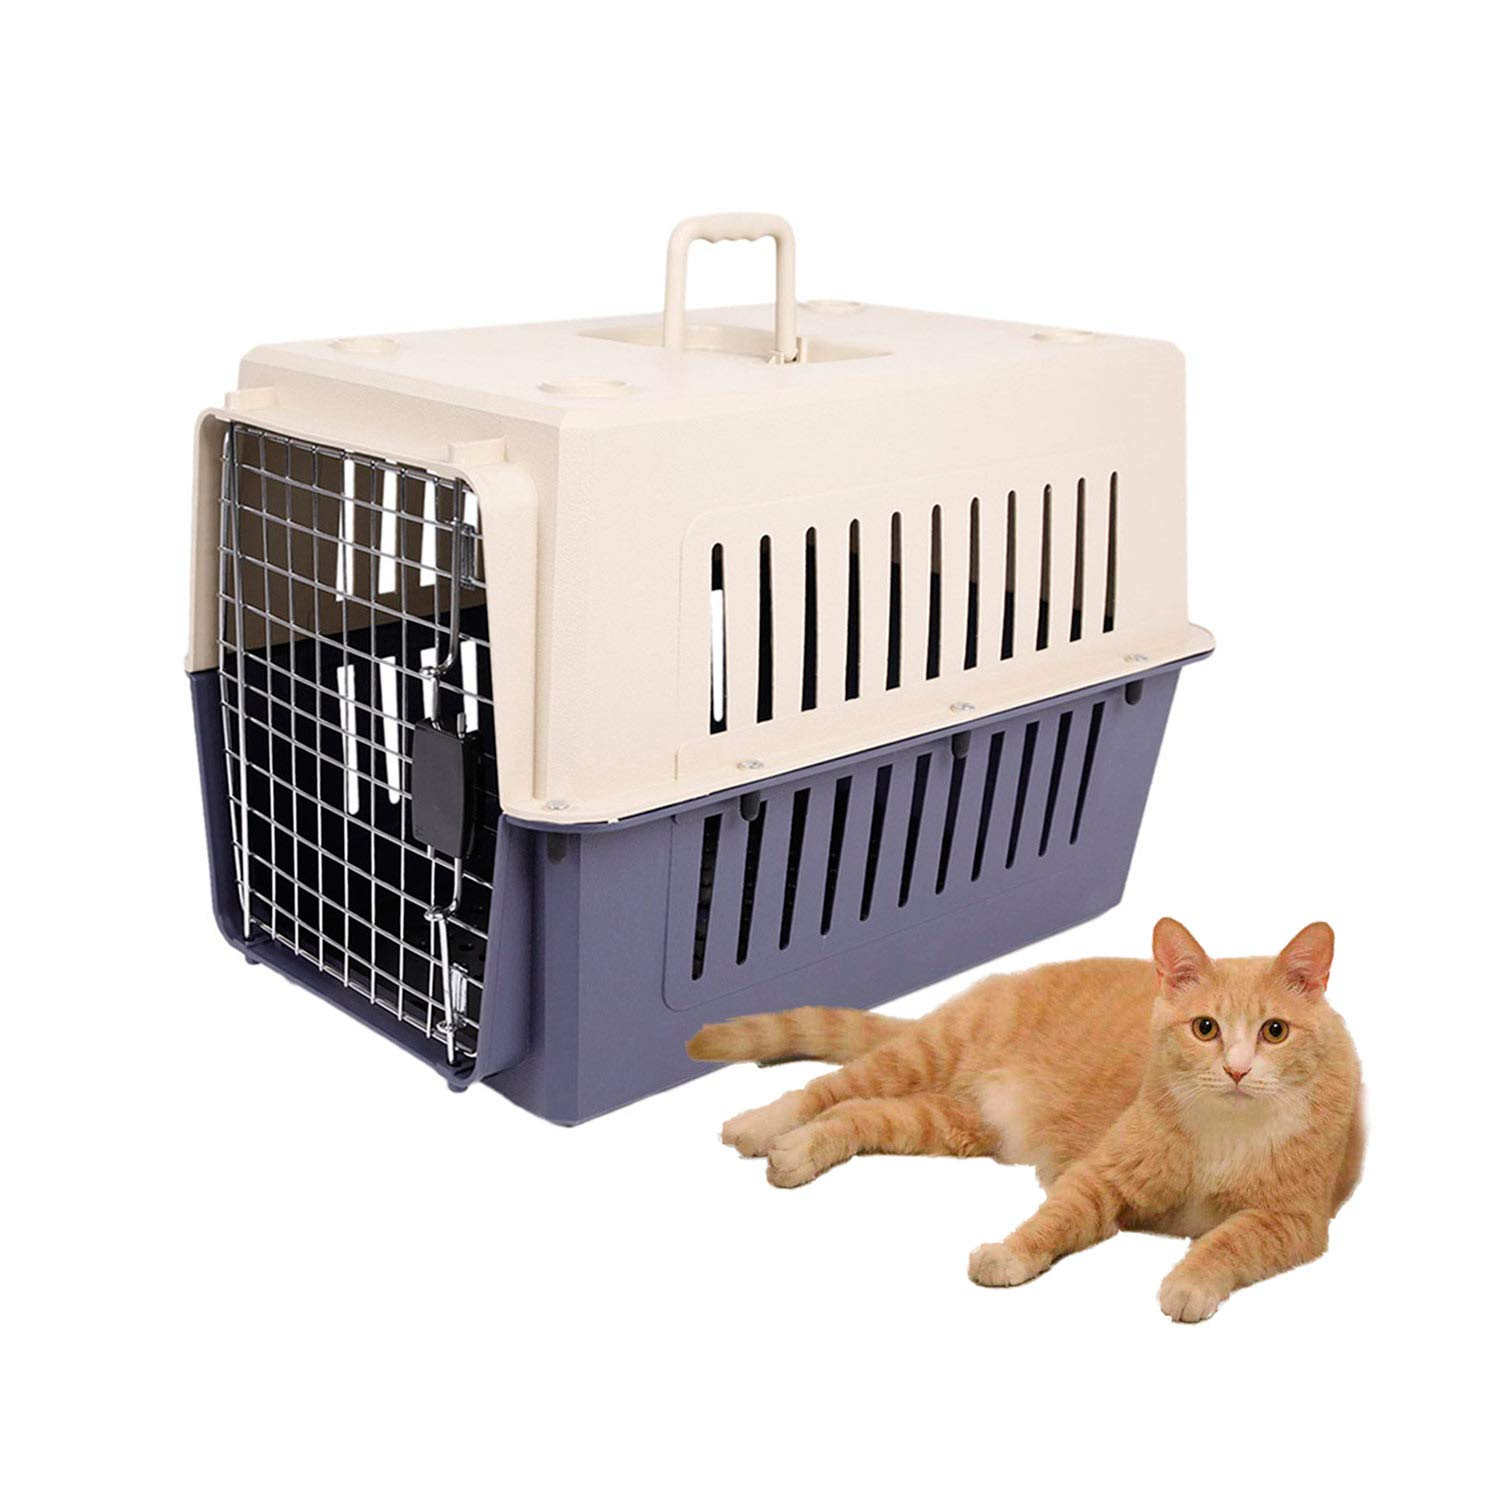 Dporticus Portable Pet Airline Box,Outdoor Portable Cage Carrier Suitable for Dogs Cats Rabbits Hamsters etc,Three Size